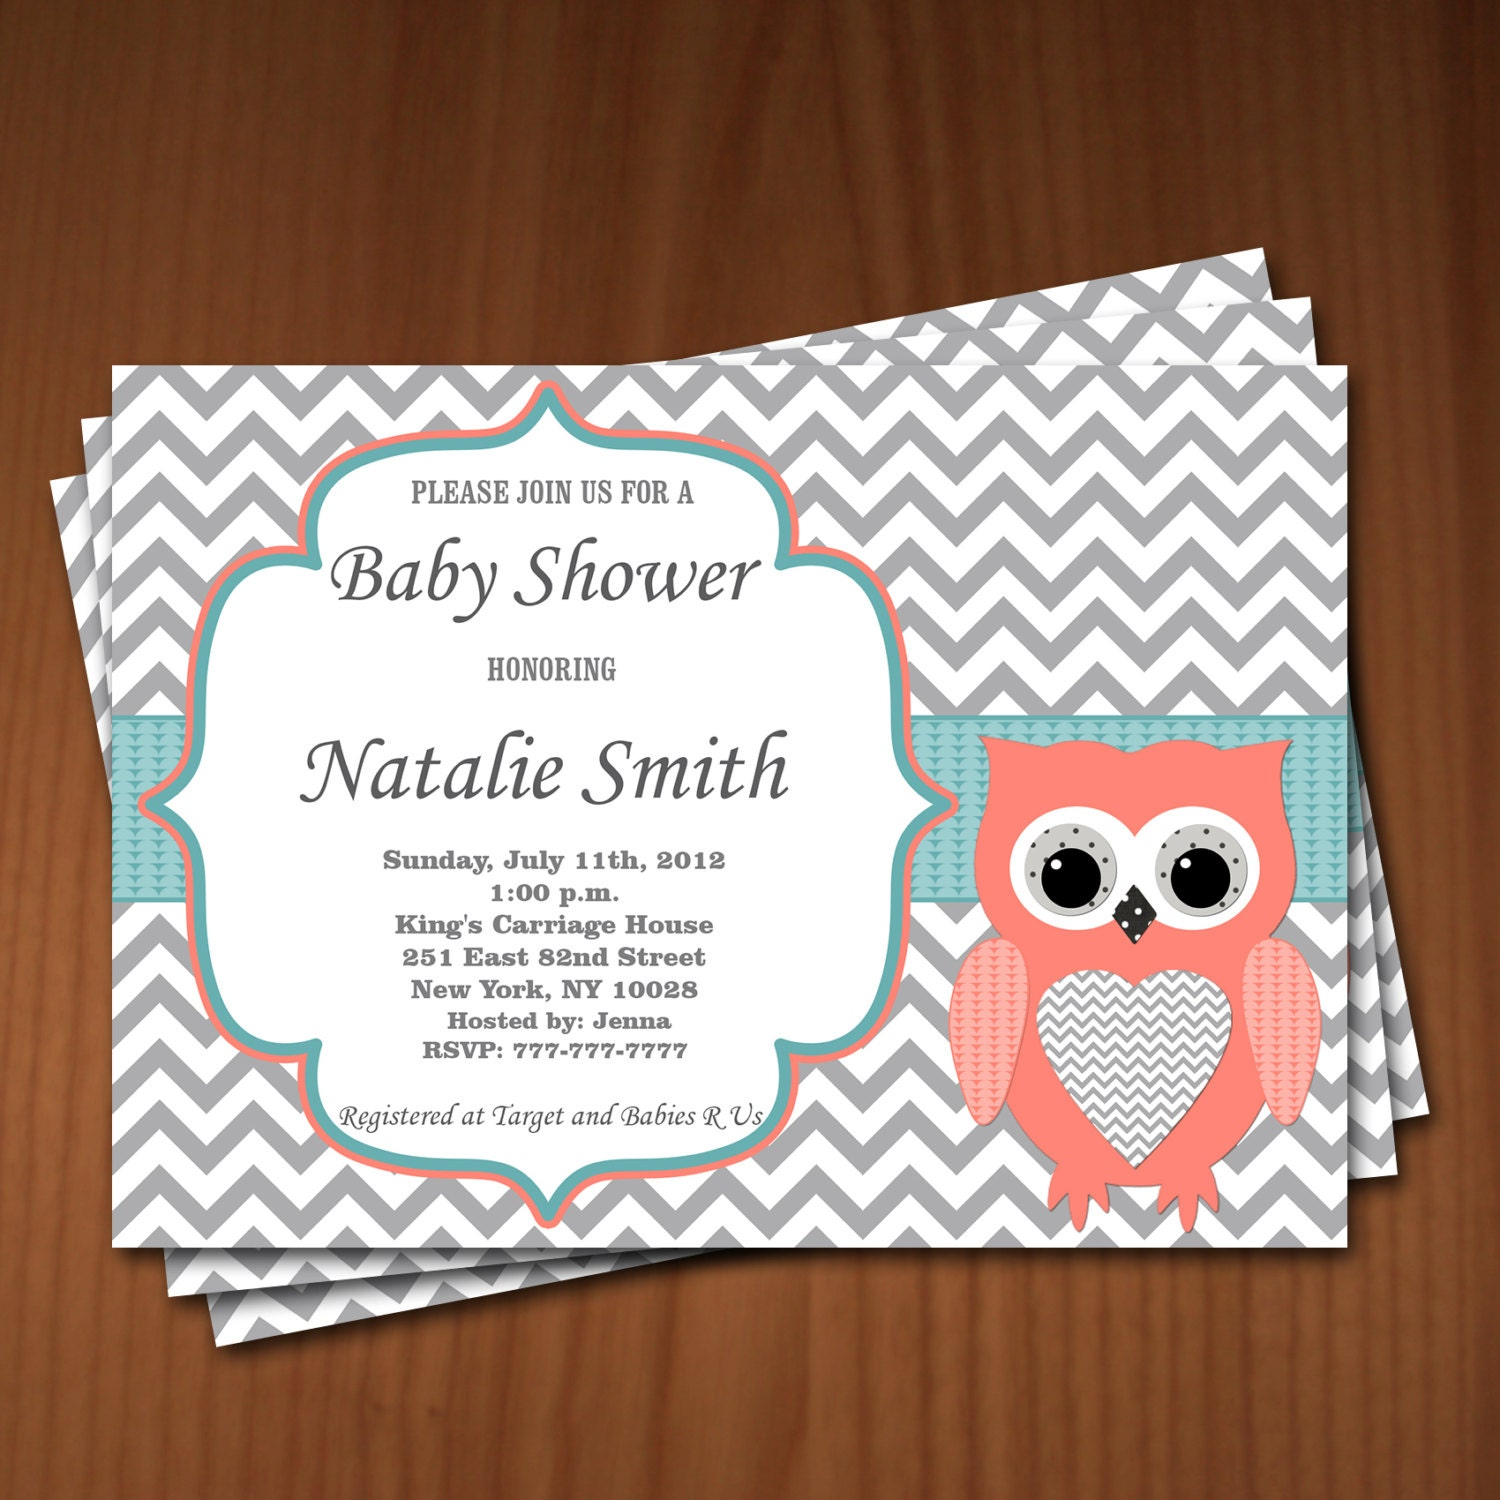 Owl baby shower invitation girl baby shower invitations zoom filmwisefo Image collections